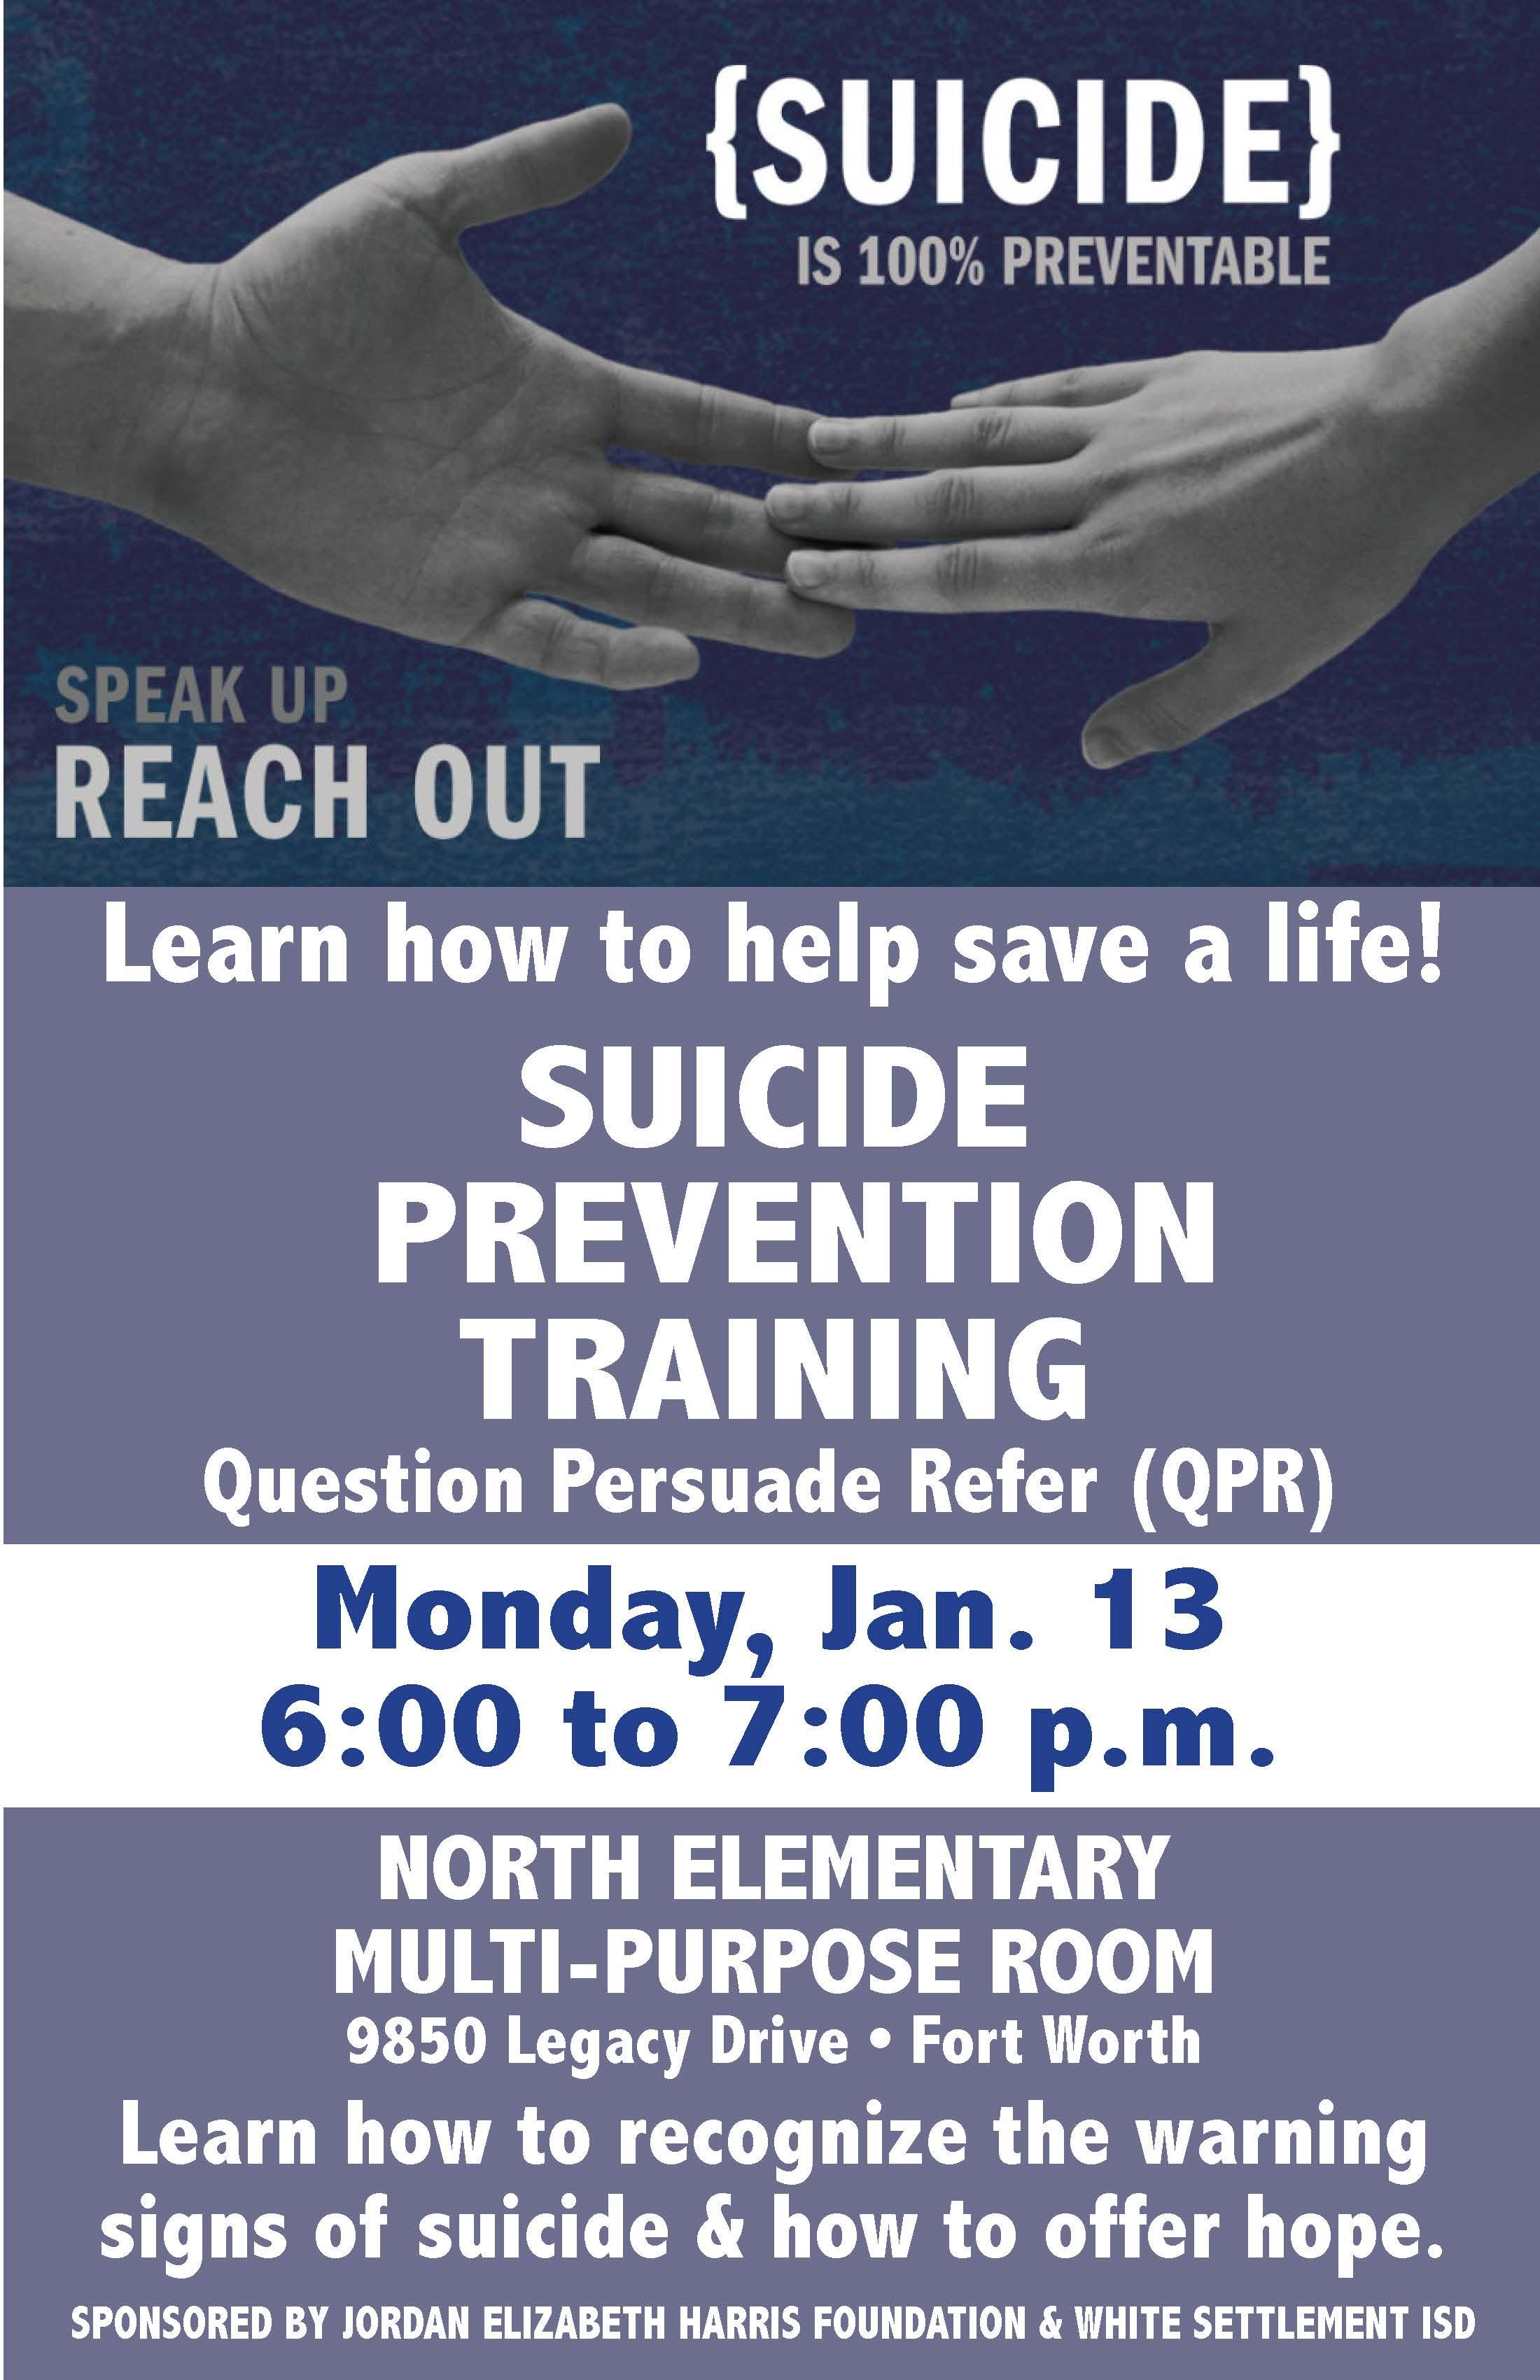 Suicide Prevention Training Jan. 1